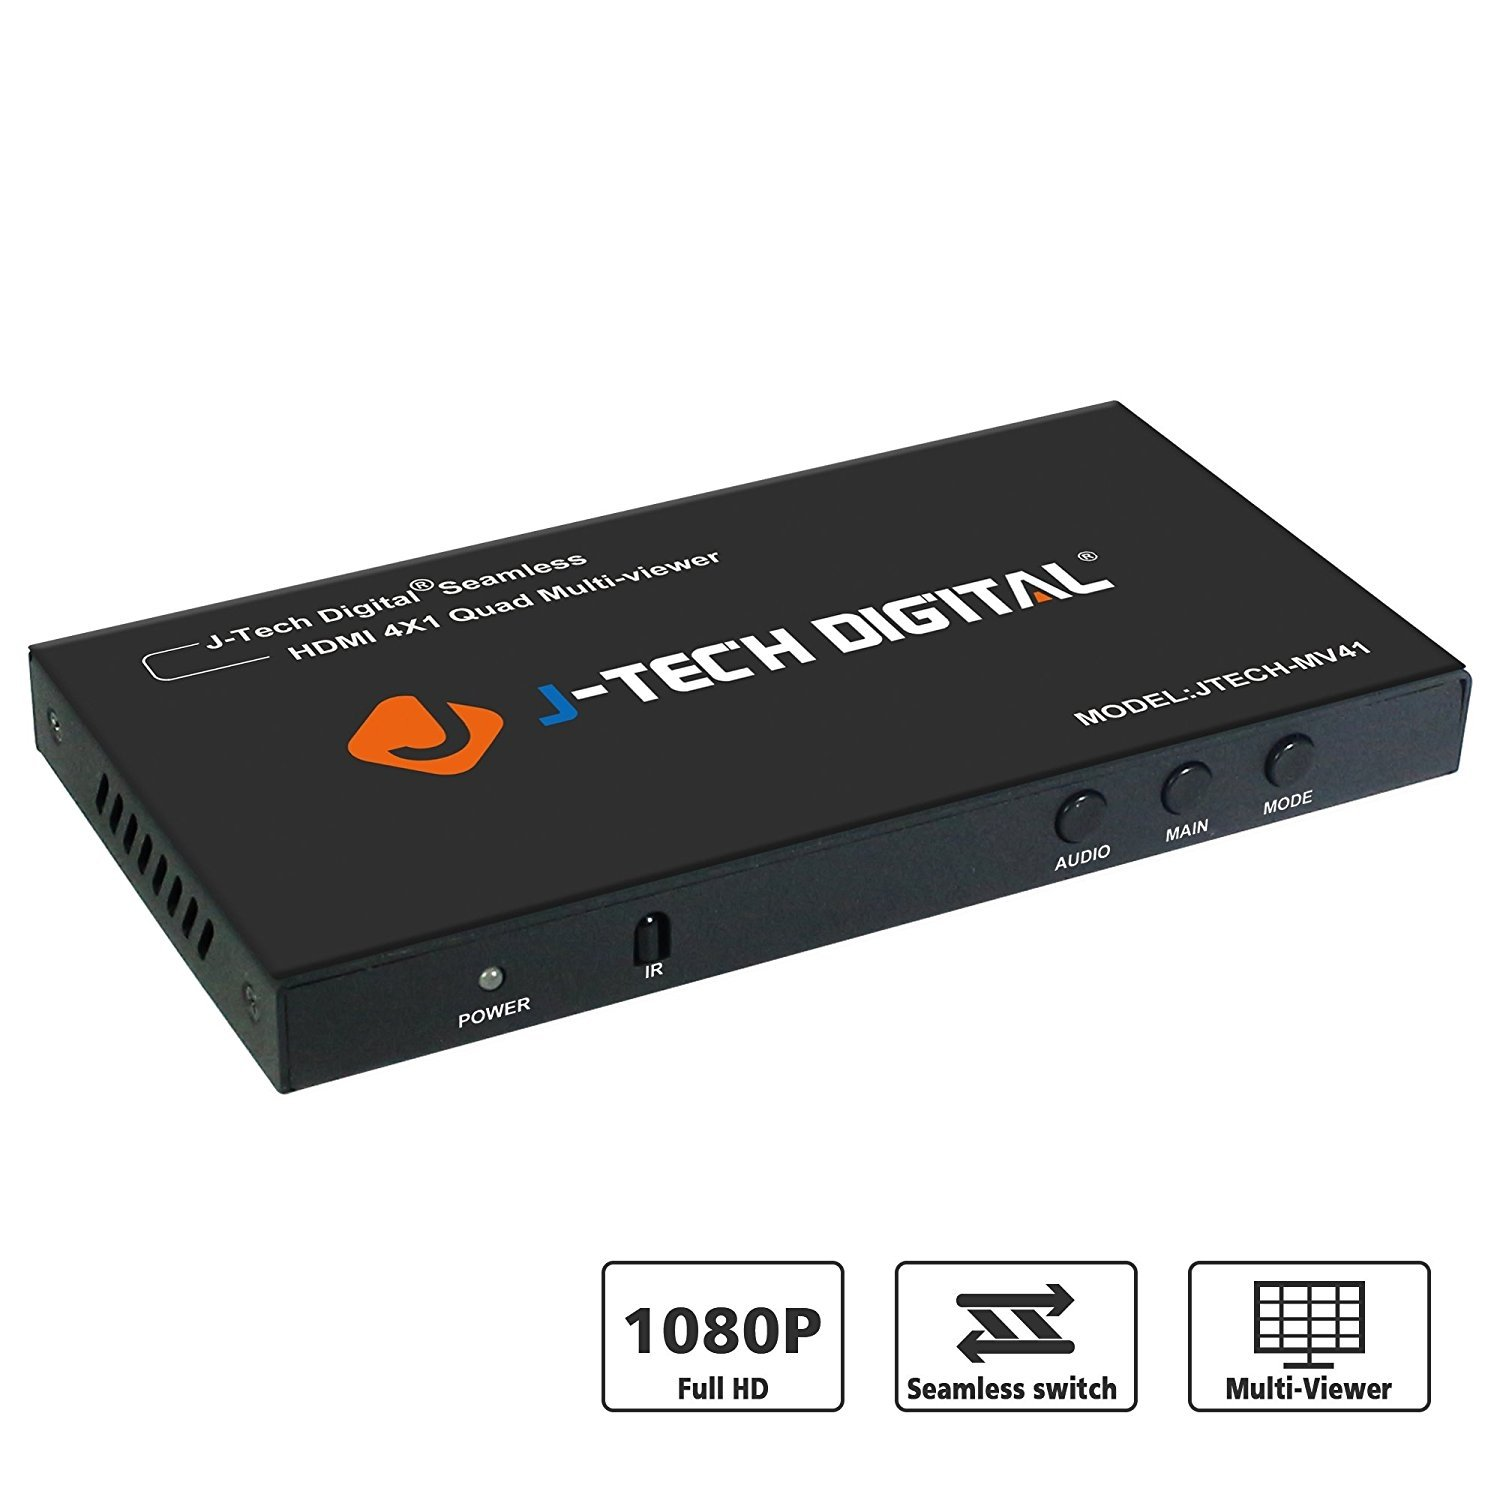 J-Tech Digital HDM1 4x1 Multi-Viewer with Seamless Switch Function